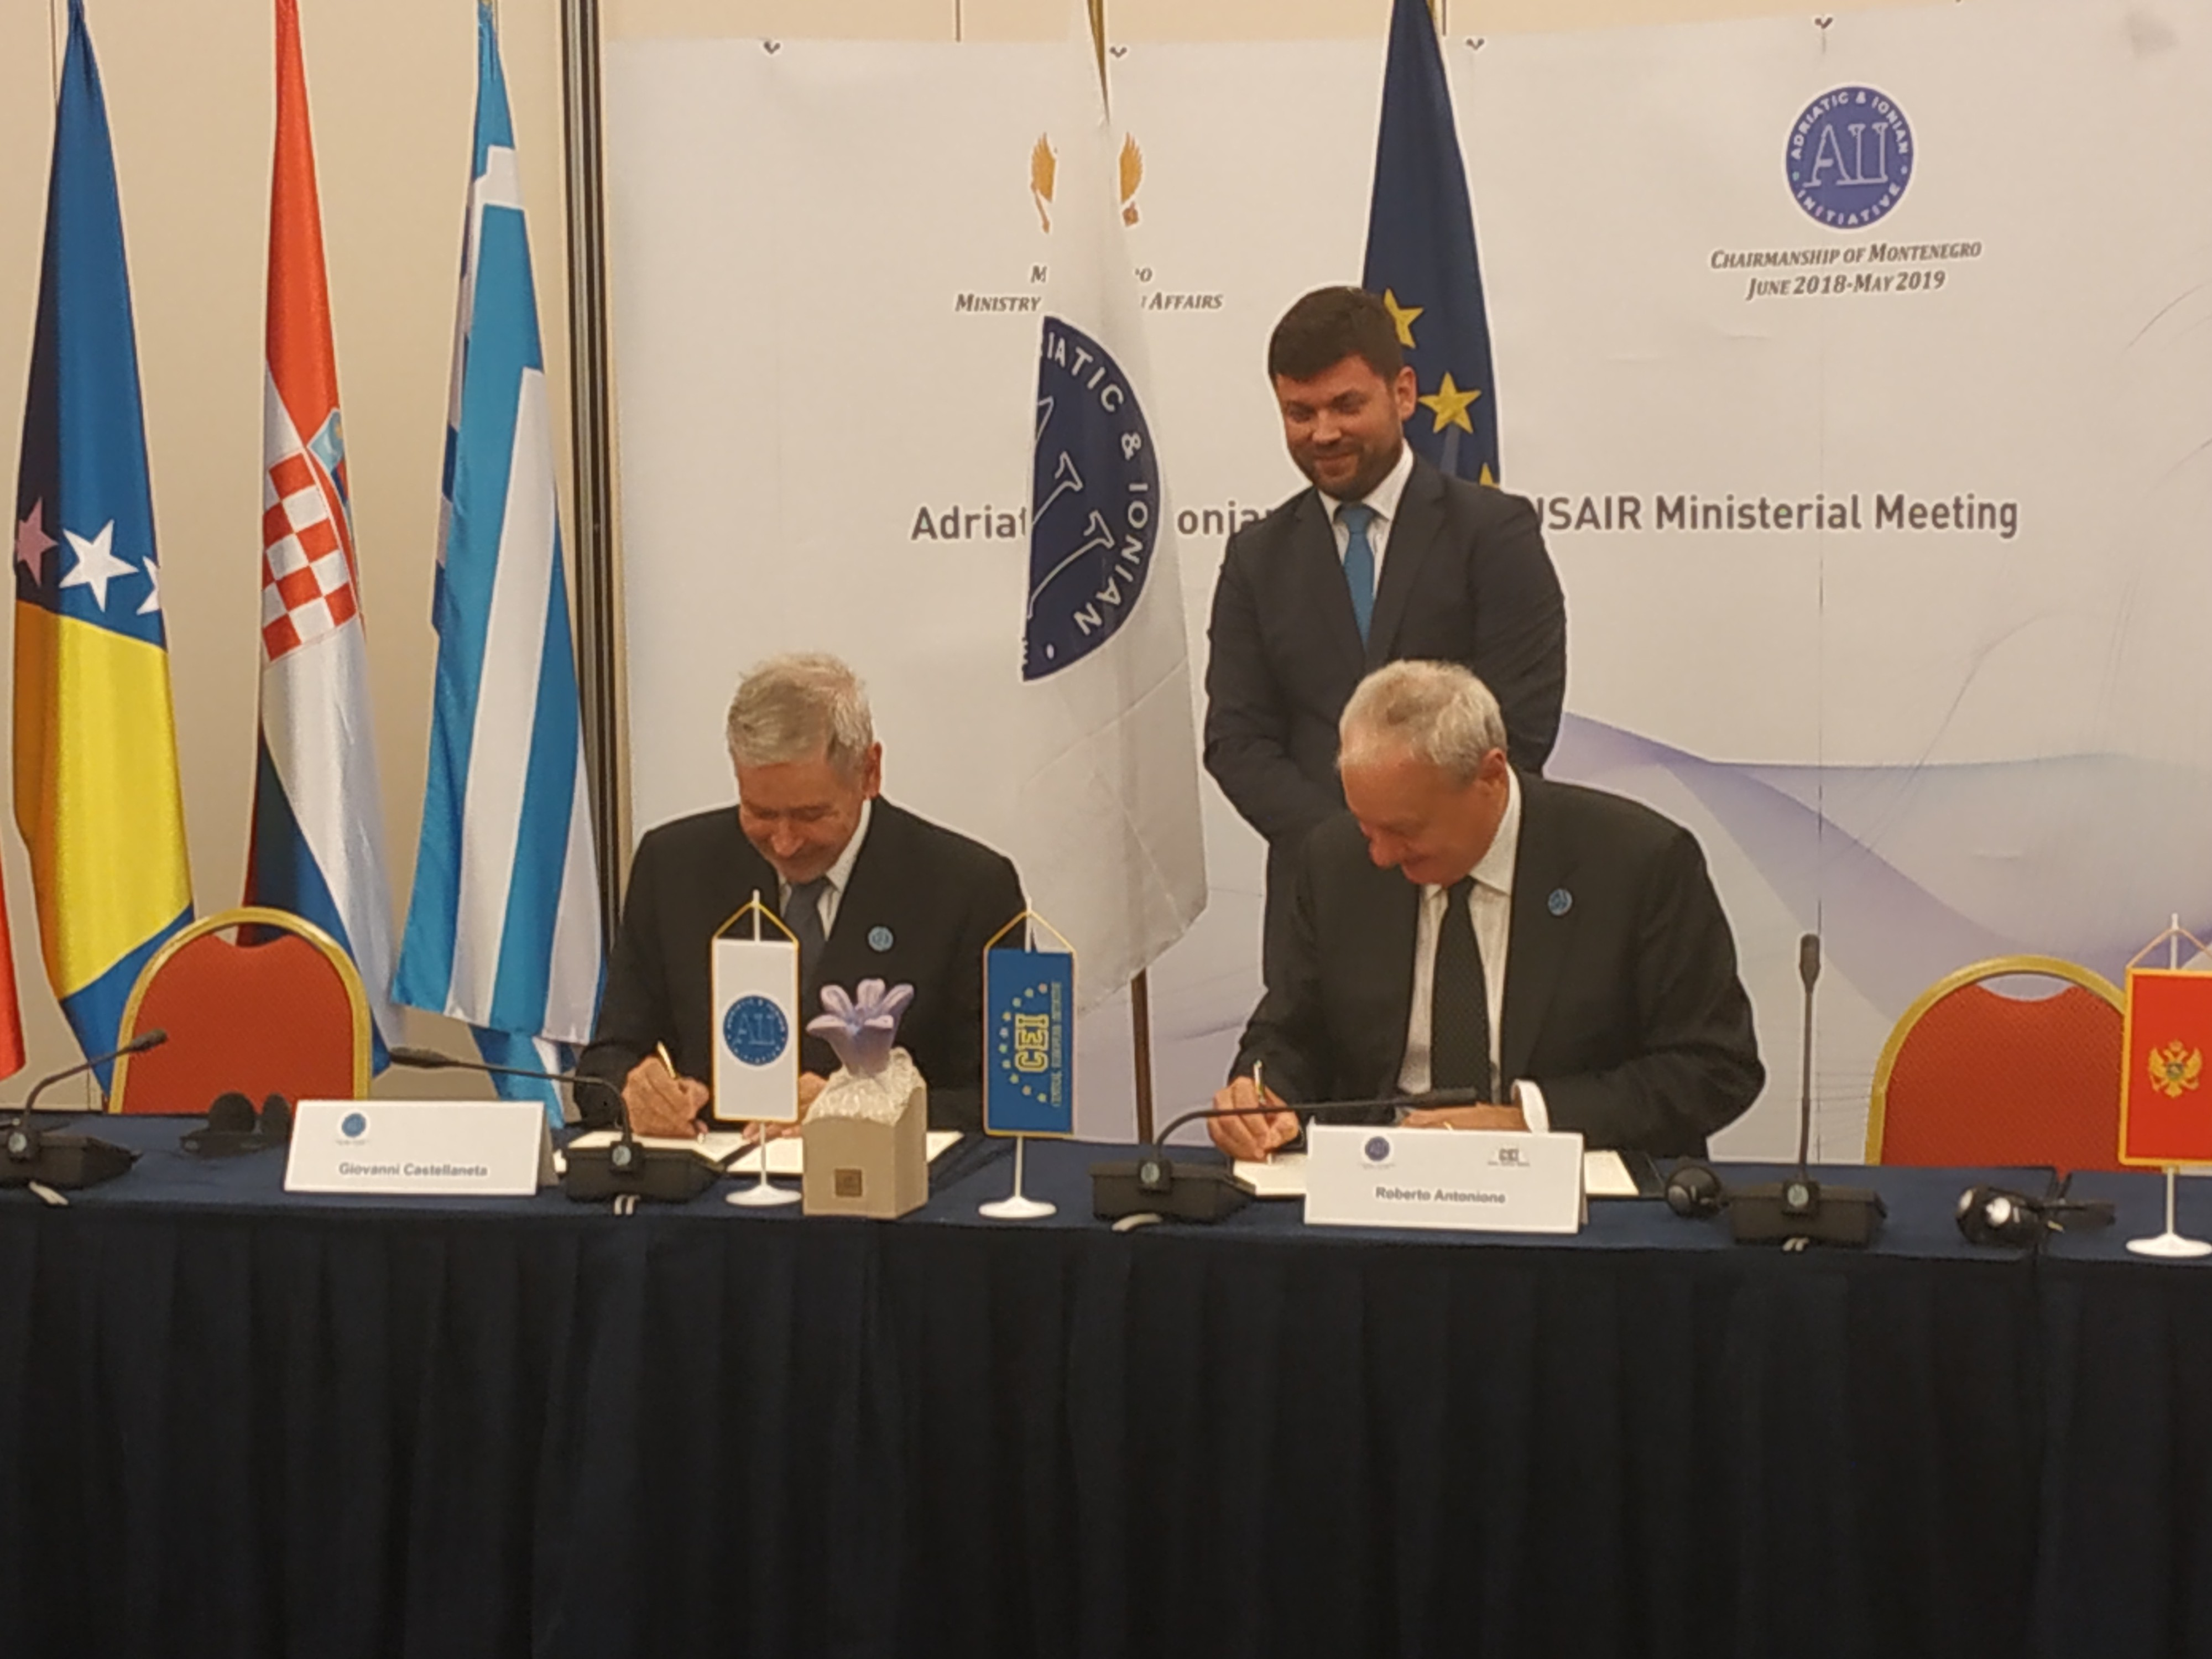 MEMORANDUM OF UNDERSTANDING BETWEEN AII AND CEI – BUDVA, MAY 8